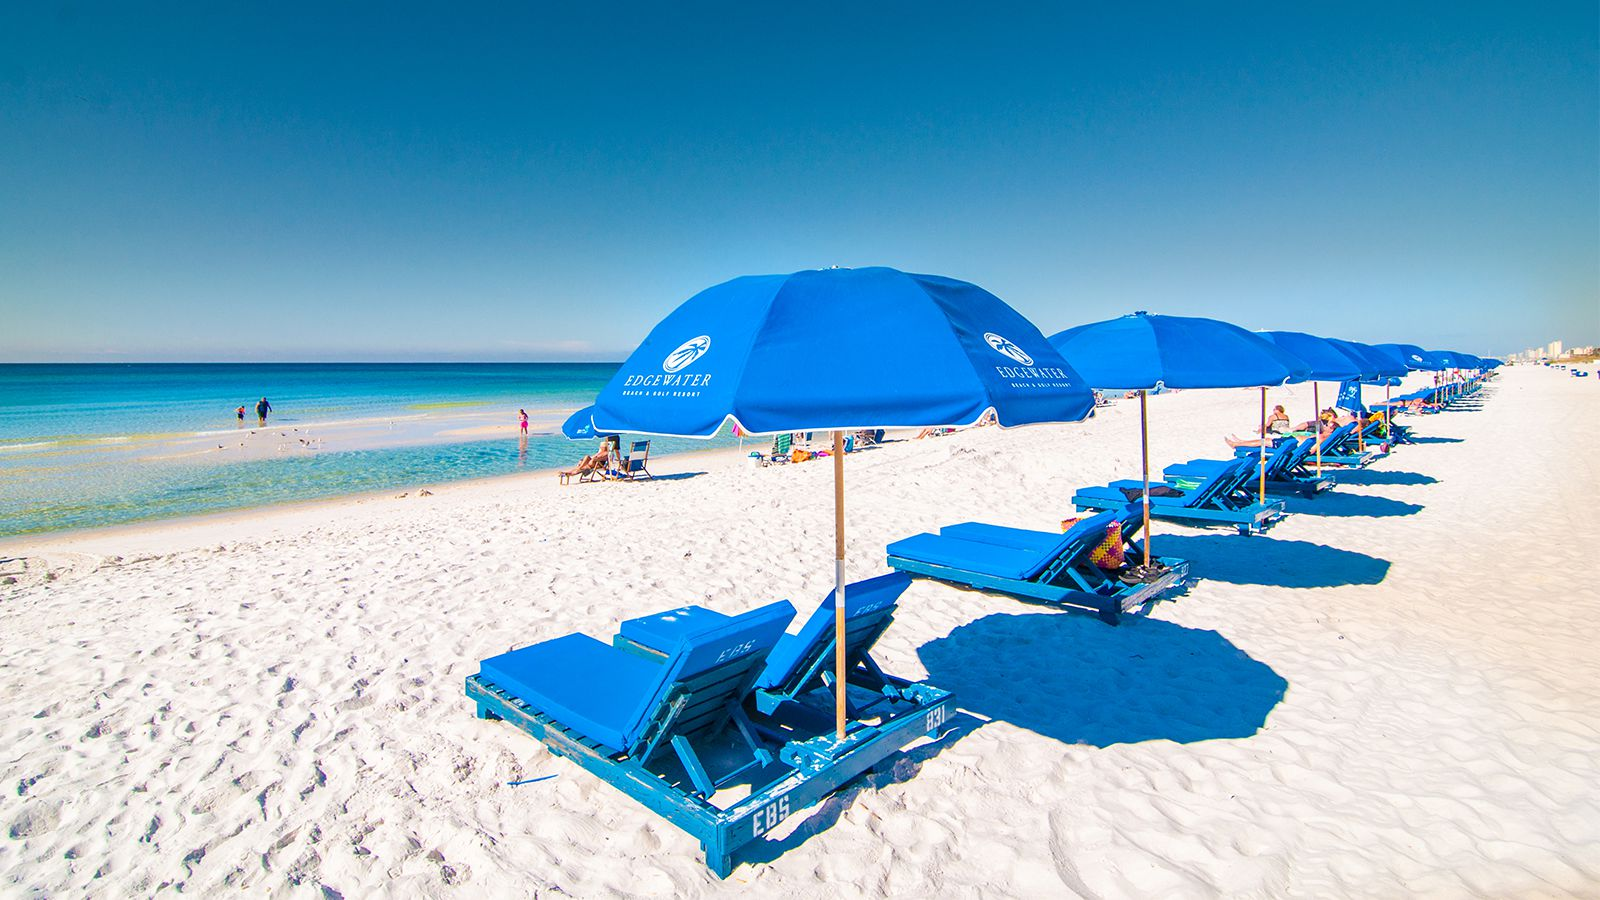 Panama City Beach Vacation Home Als At No Booking Fees Service Find American